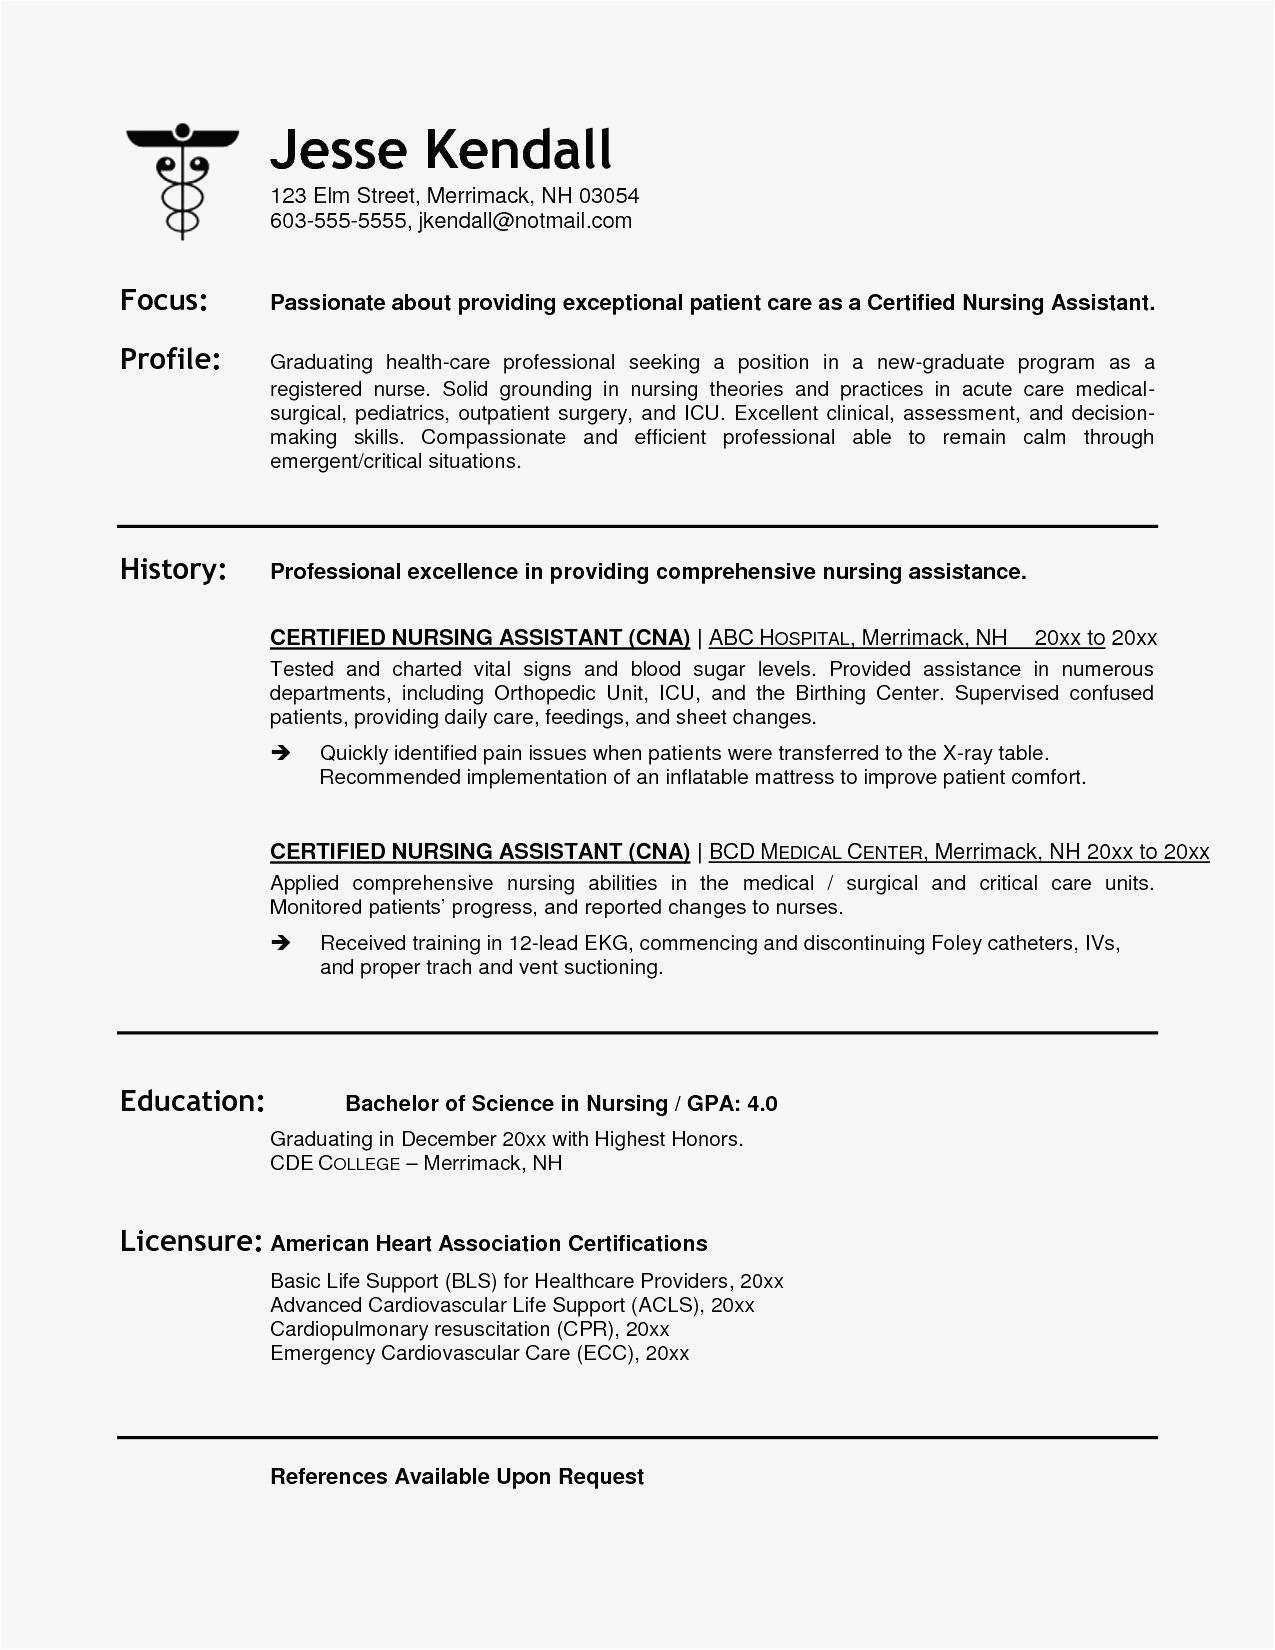 architect resume sample Professional in 2020 Certified